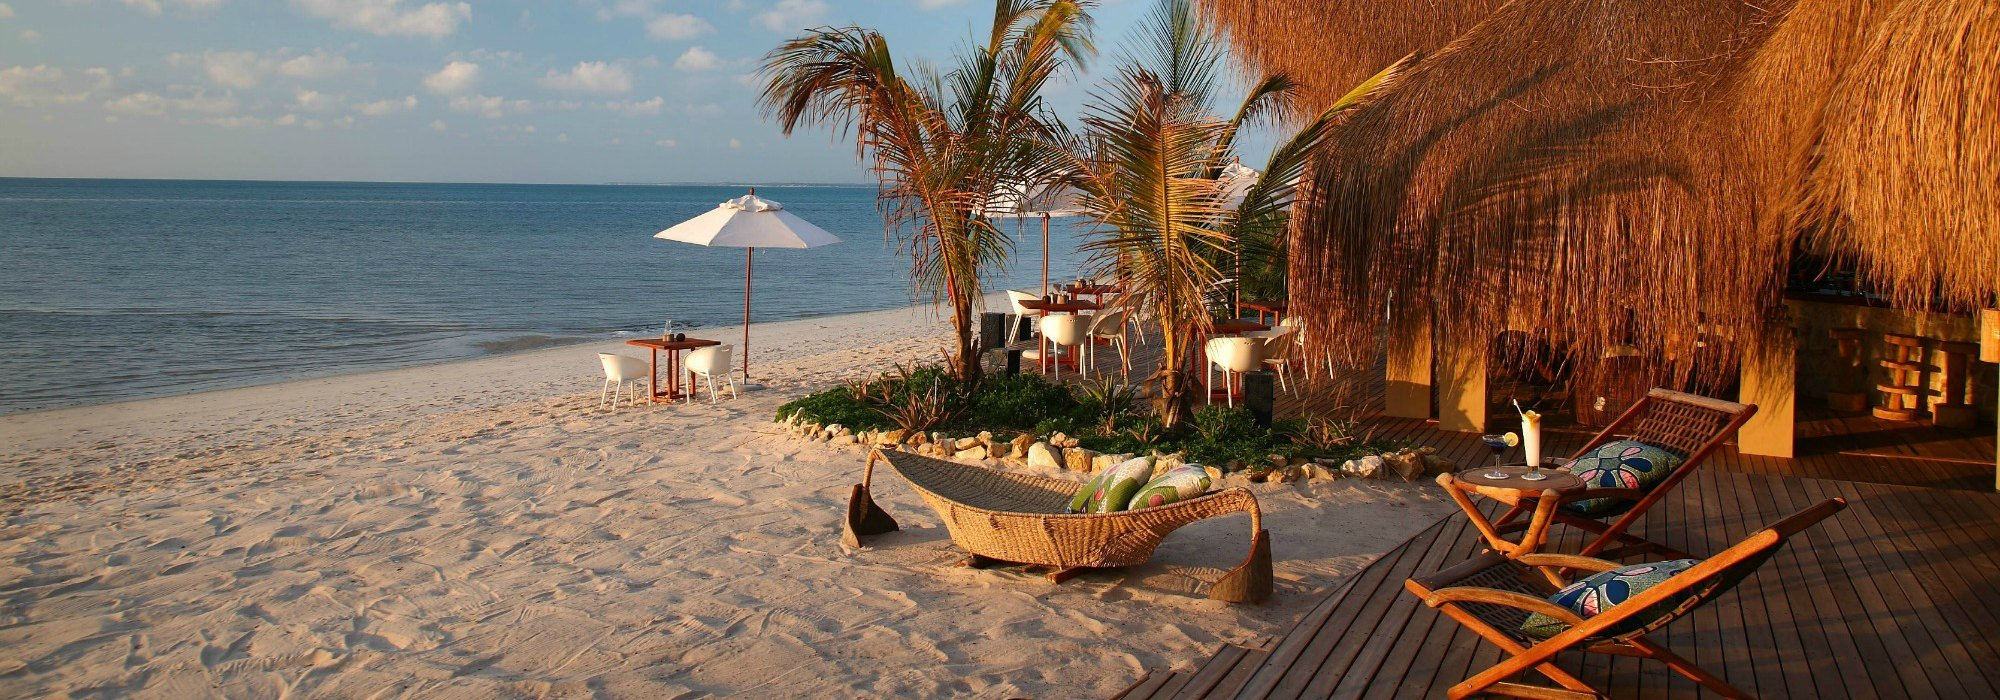 Mozambique Beach at Azura